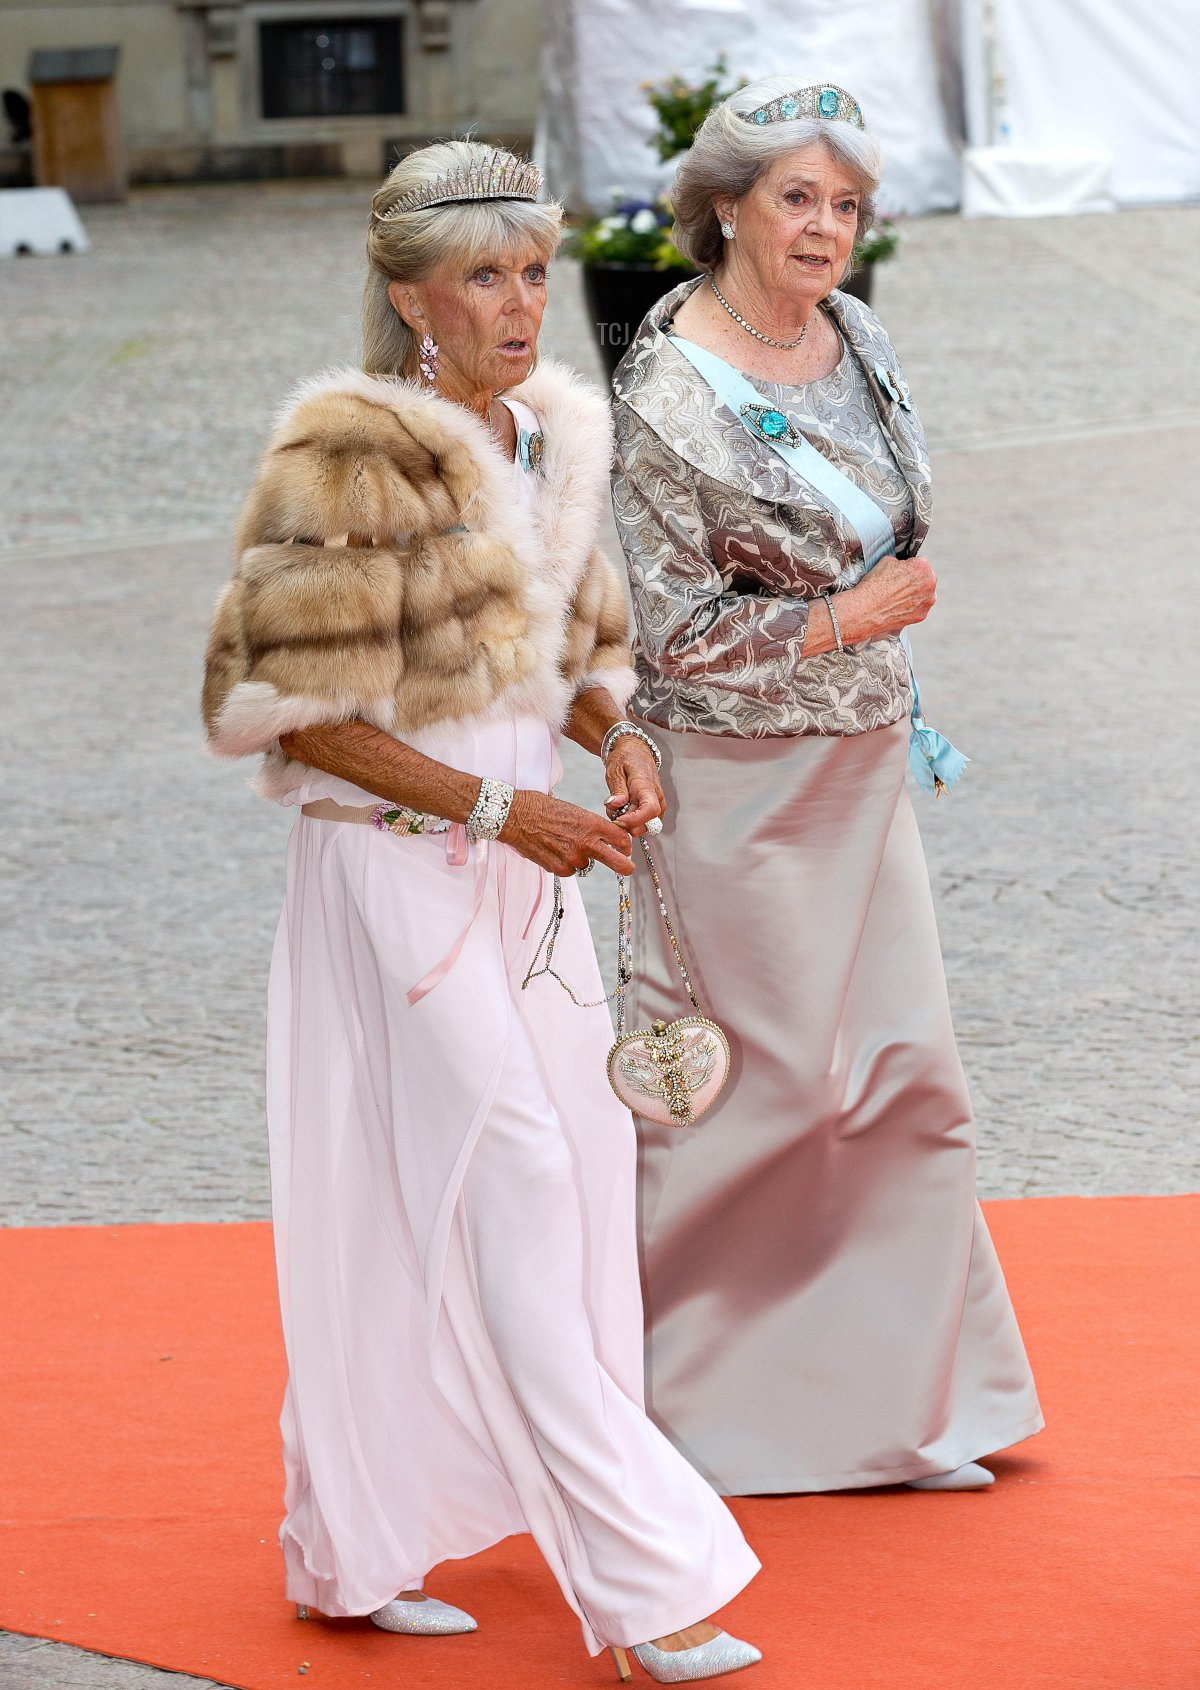 Princess Birgitta (L) and Princess Margaretha of Sweden arrive at the Royal Palace for the wedding of Prince Carl Philip and Sofia Hellqvist at the Palace Chapel in Stockholm, Sweden, 13 June 2015